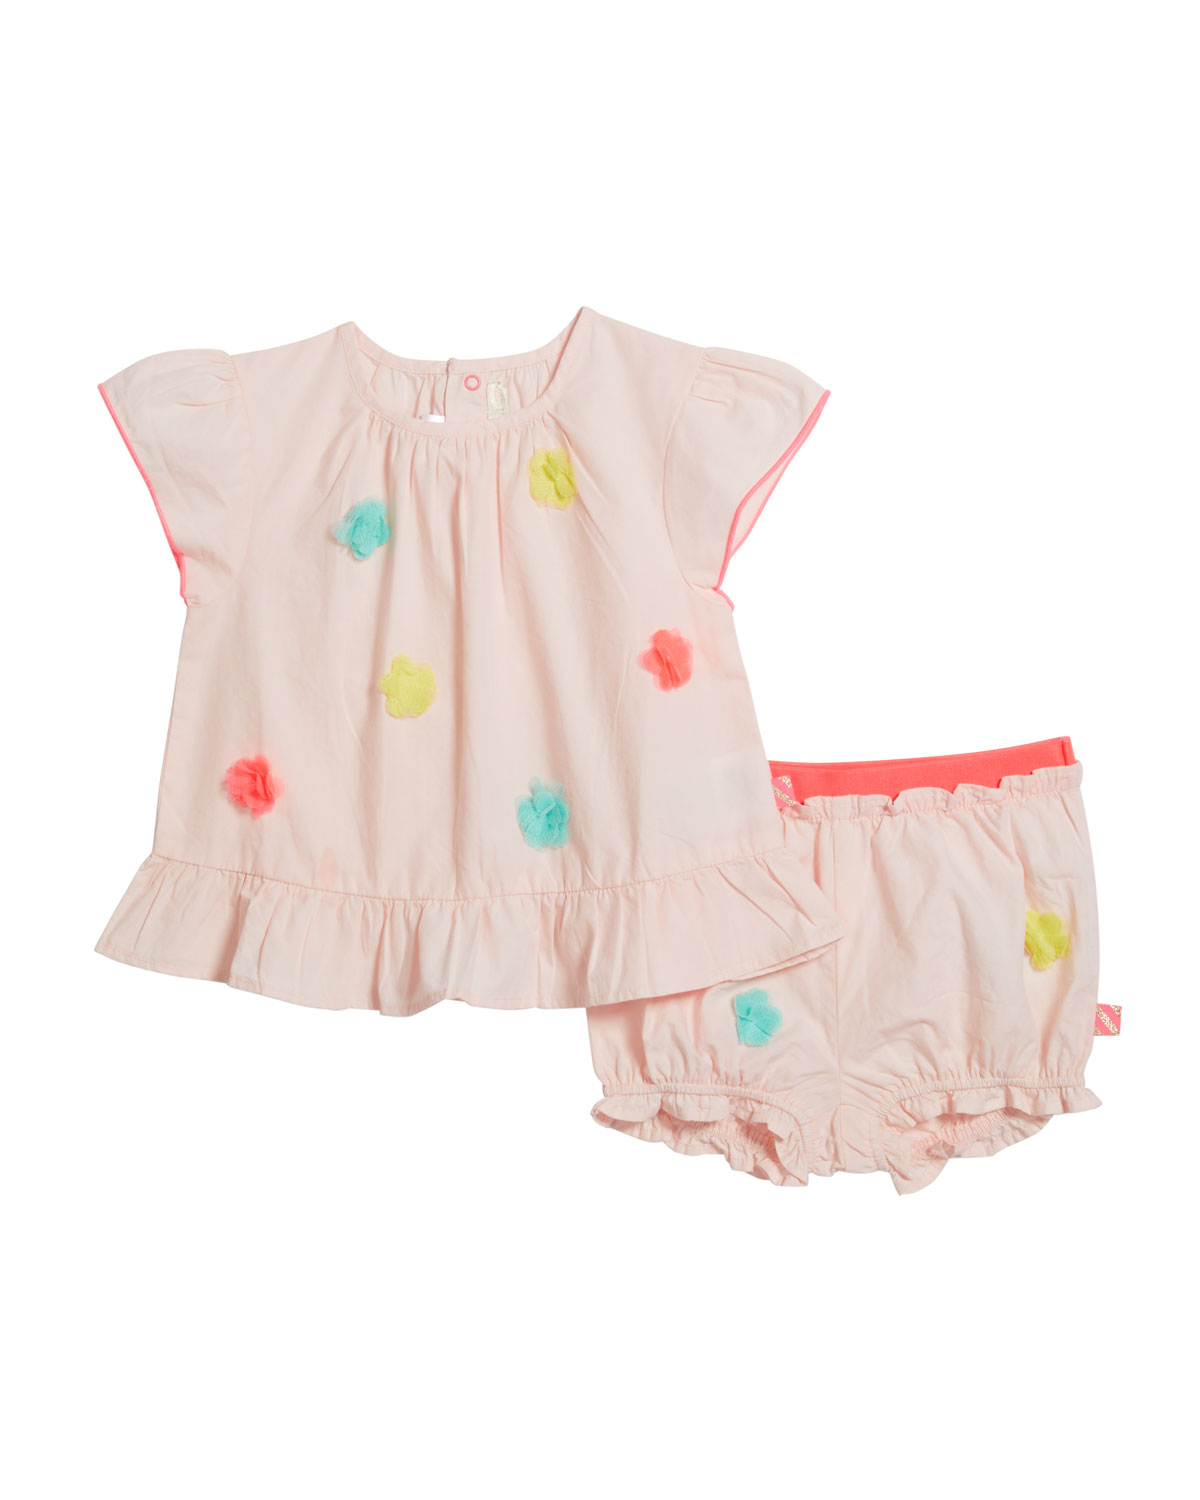 Billieblush Girl's Pompom Blouse w/ Matching Bloomers, Size 12M - 3